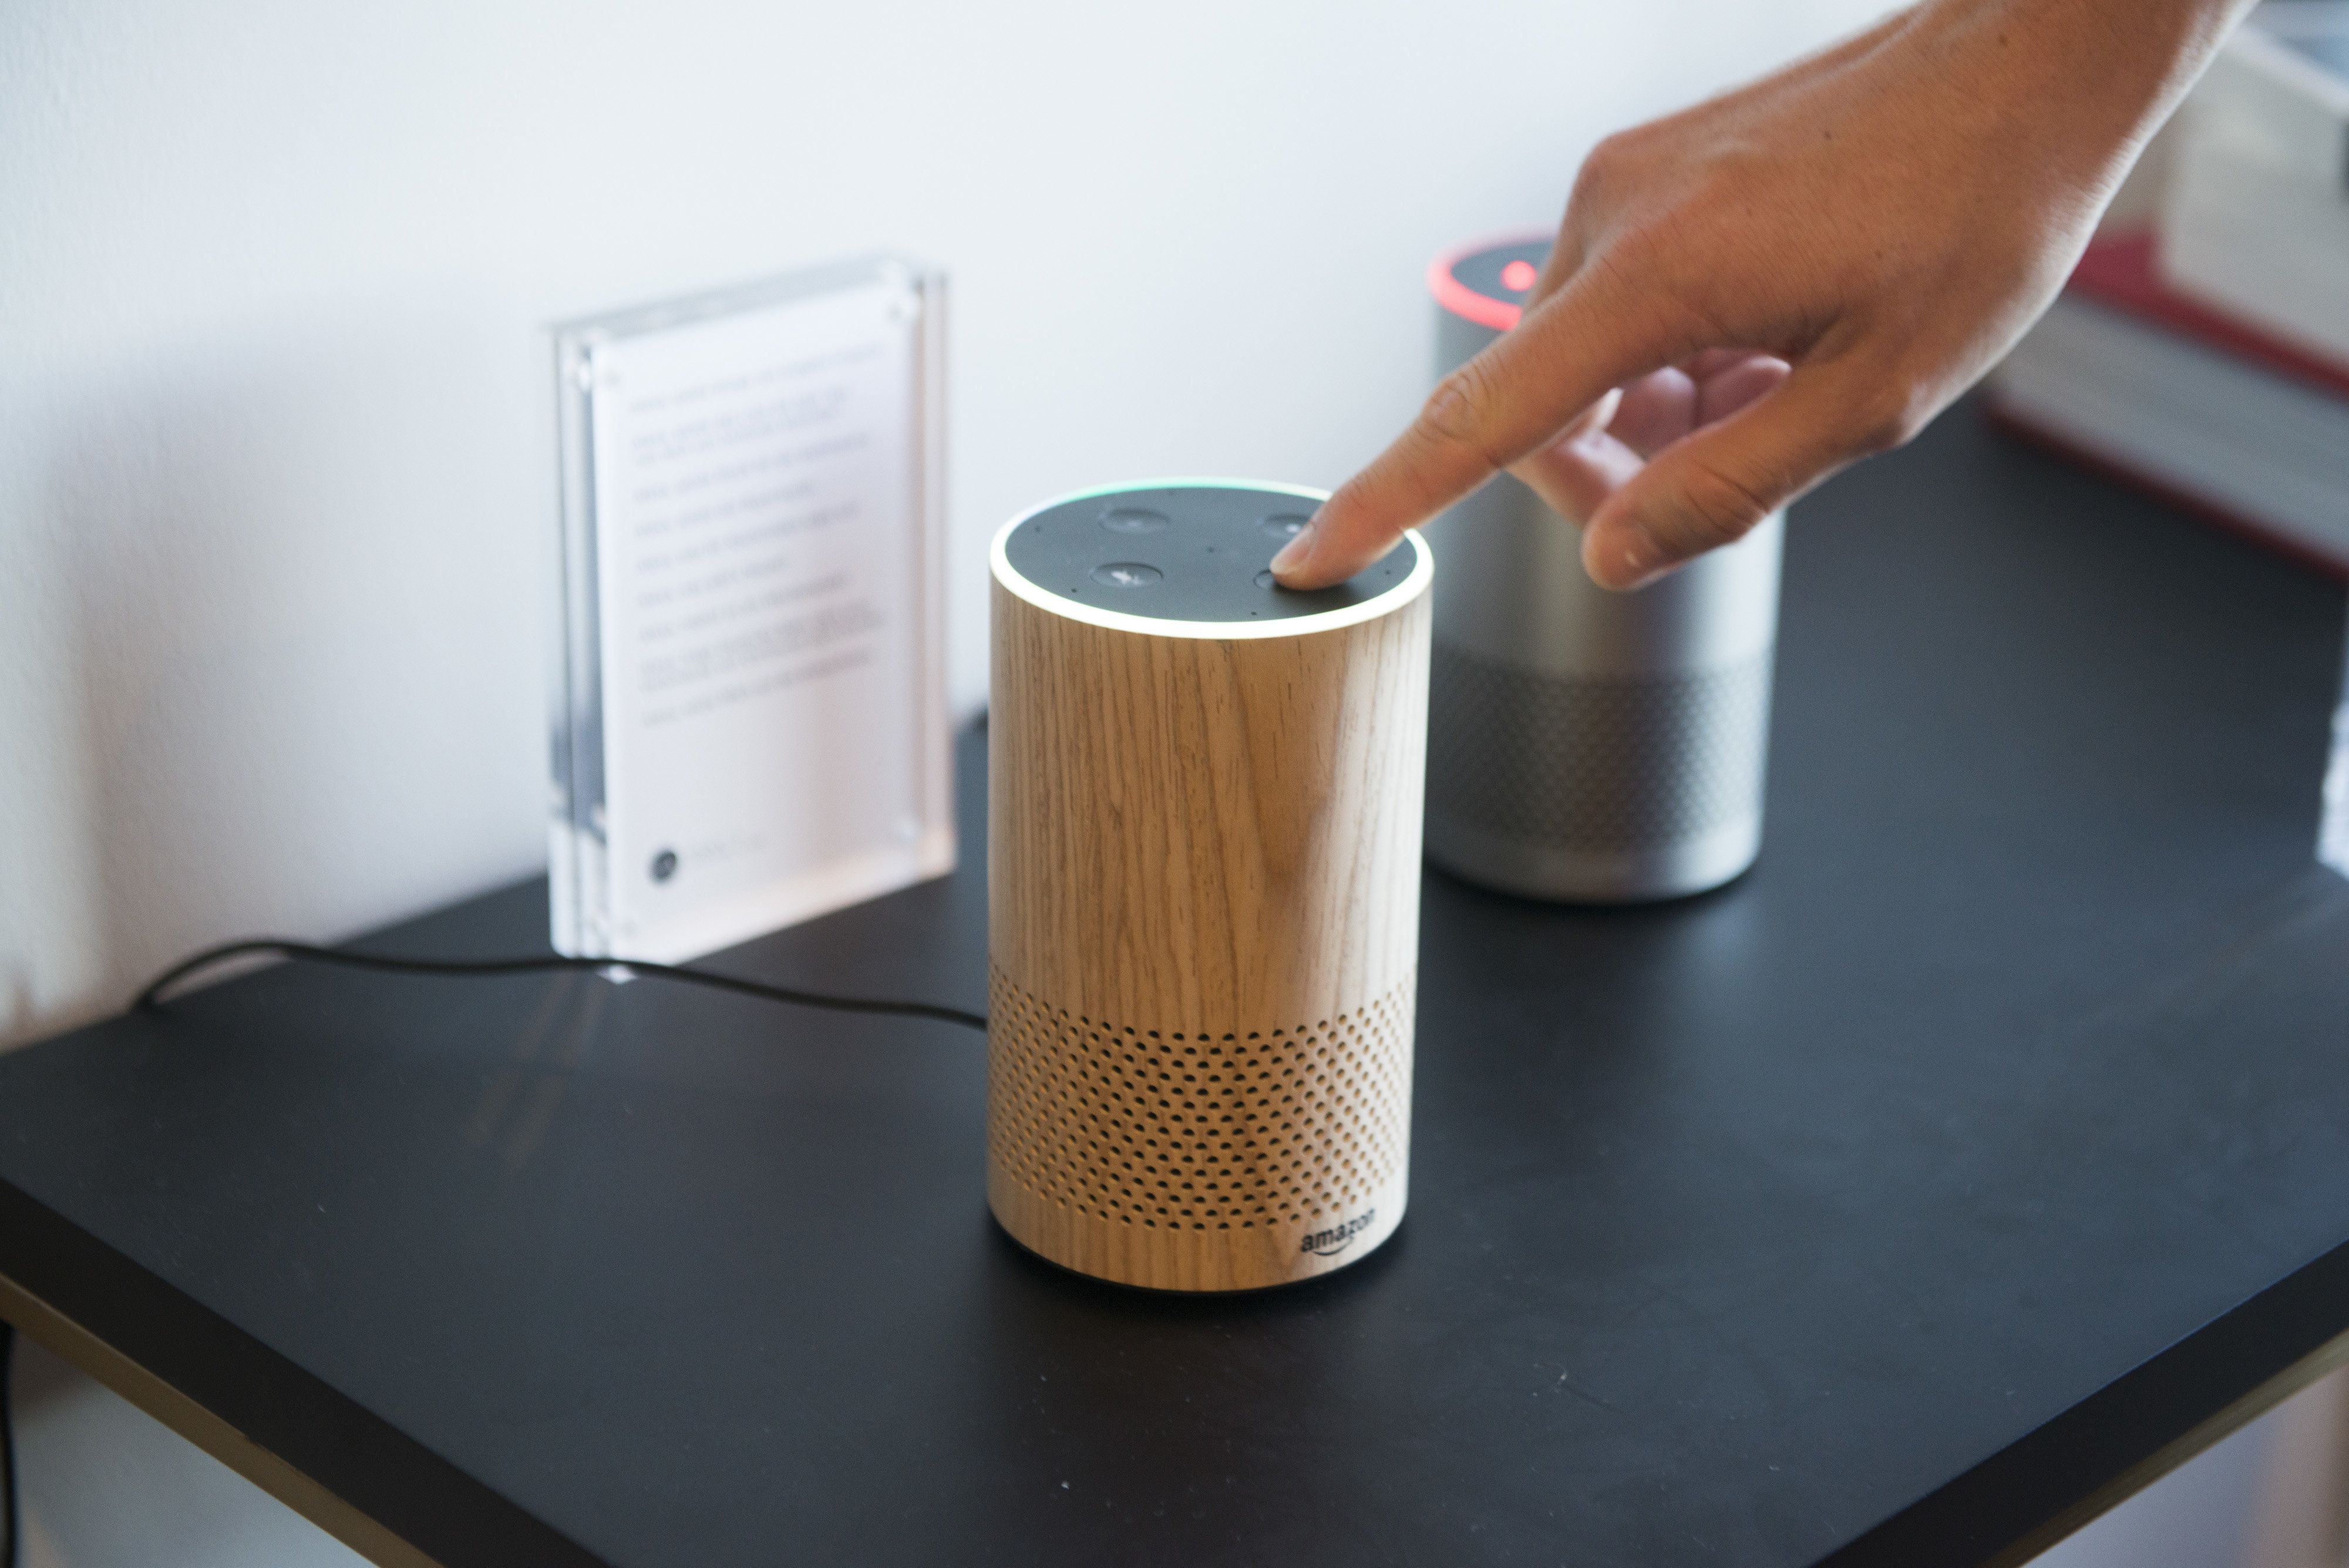 An attendee operates the new Amazon.com Inc. Echo device on display during the company's product reveal launch event in downtown Seattle, Washington, U.S., on Wednesday, Sept. 27, 2017. Amazon unveiled a smaller, cheaper version of its popular Alexa-powered Echo speaker that the e-commerce giant said has better sound. Photographer: Daniel Berman/Bloomberg via Getty Images